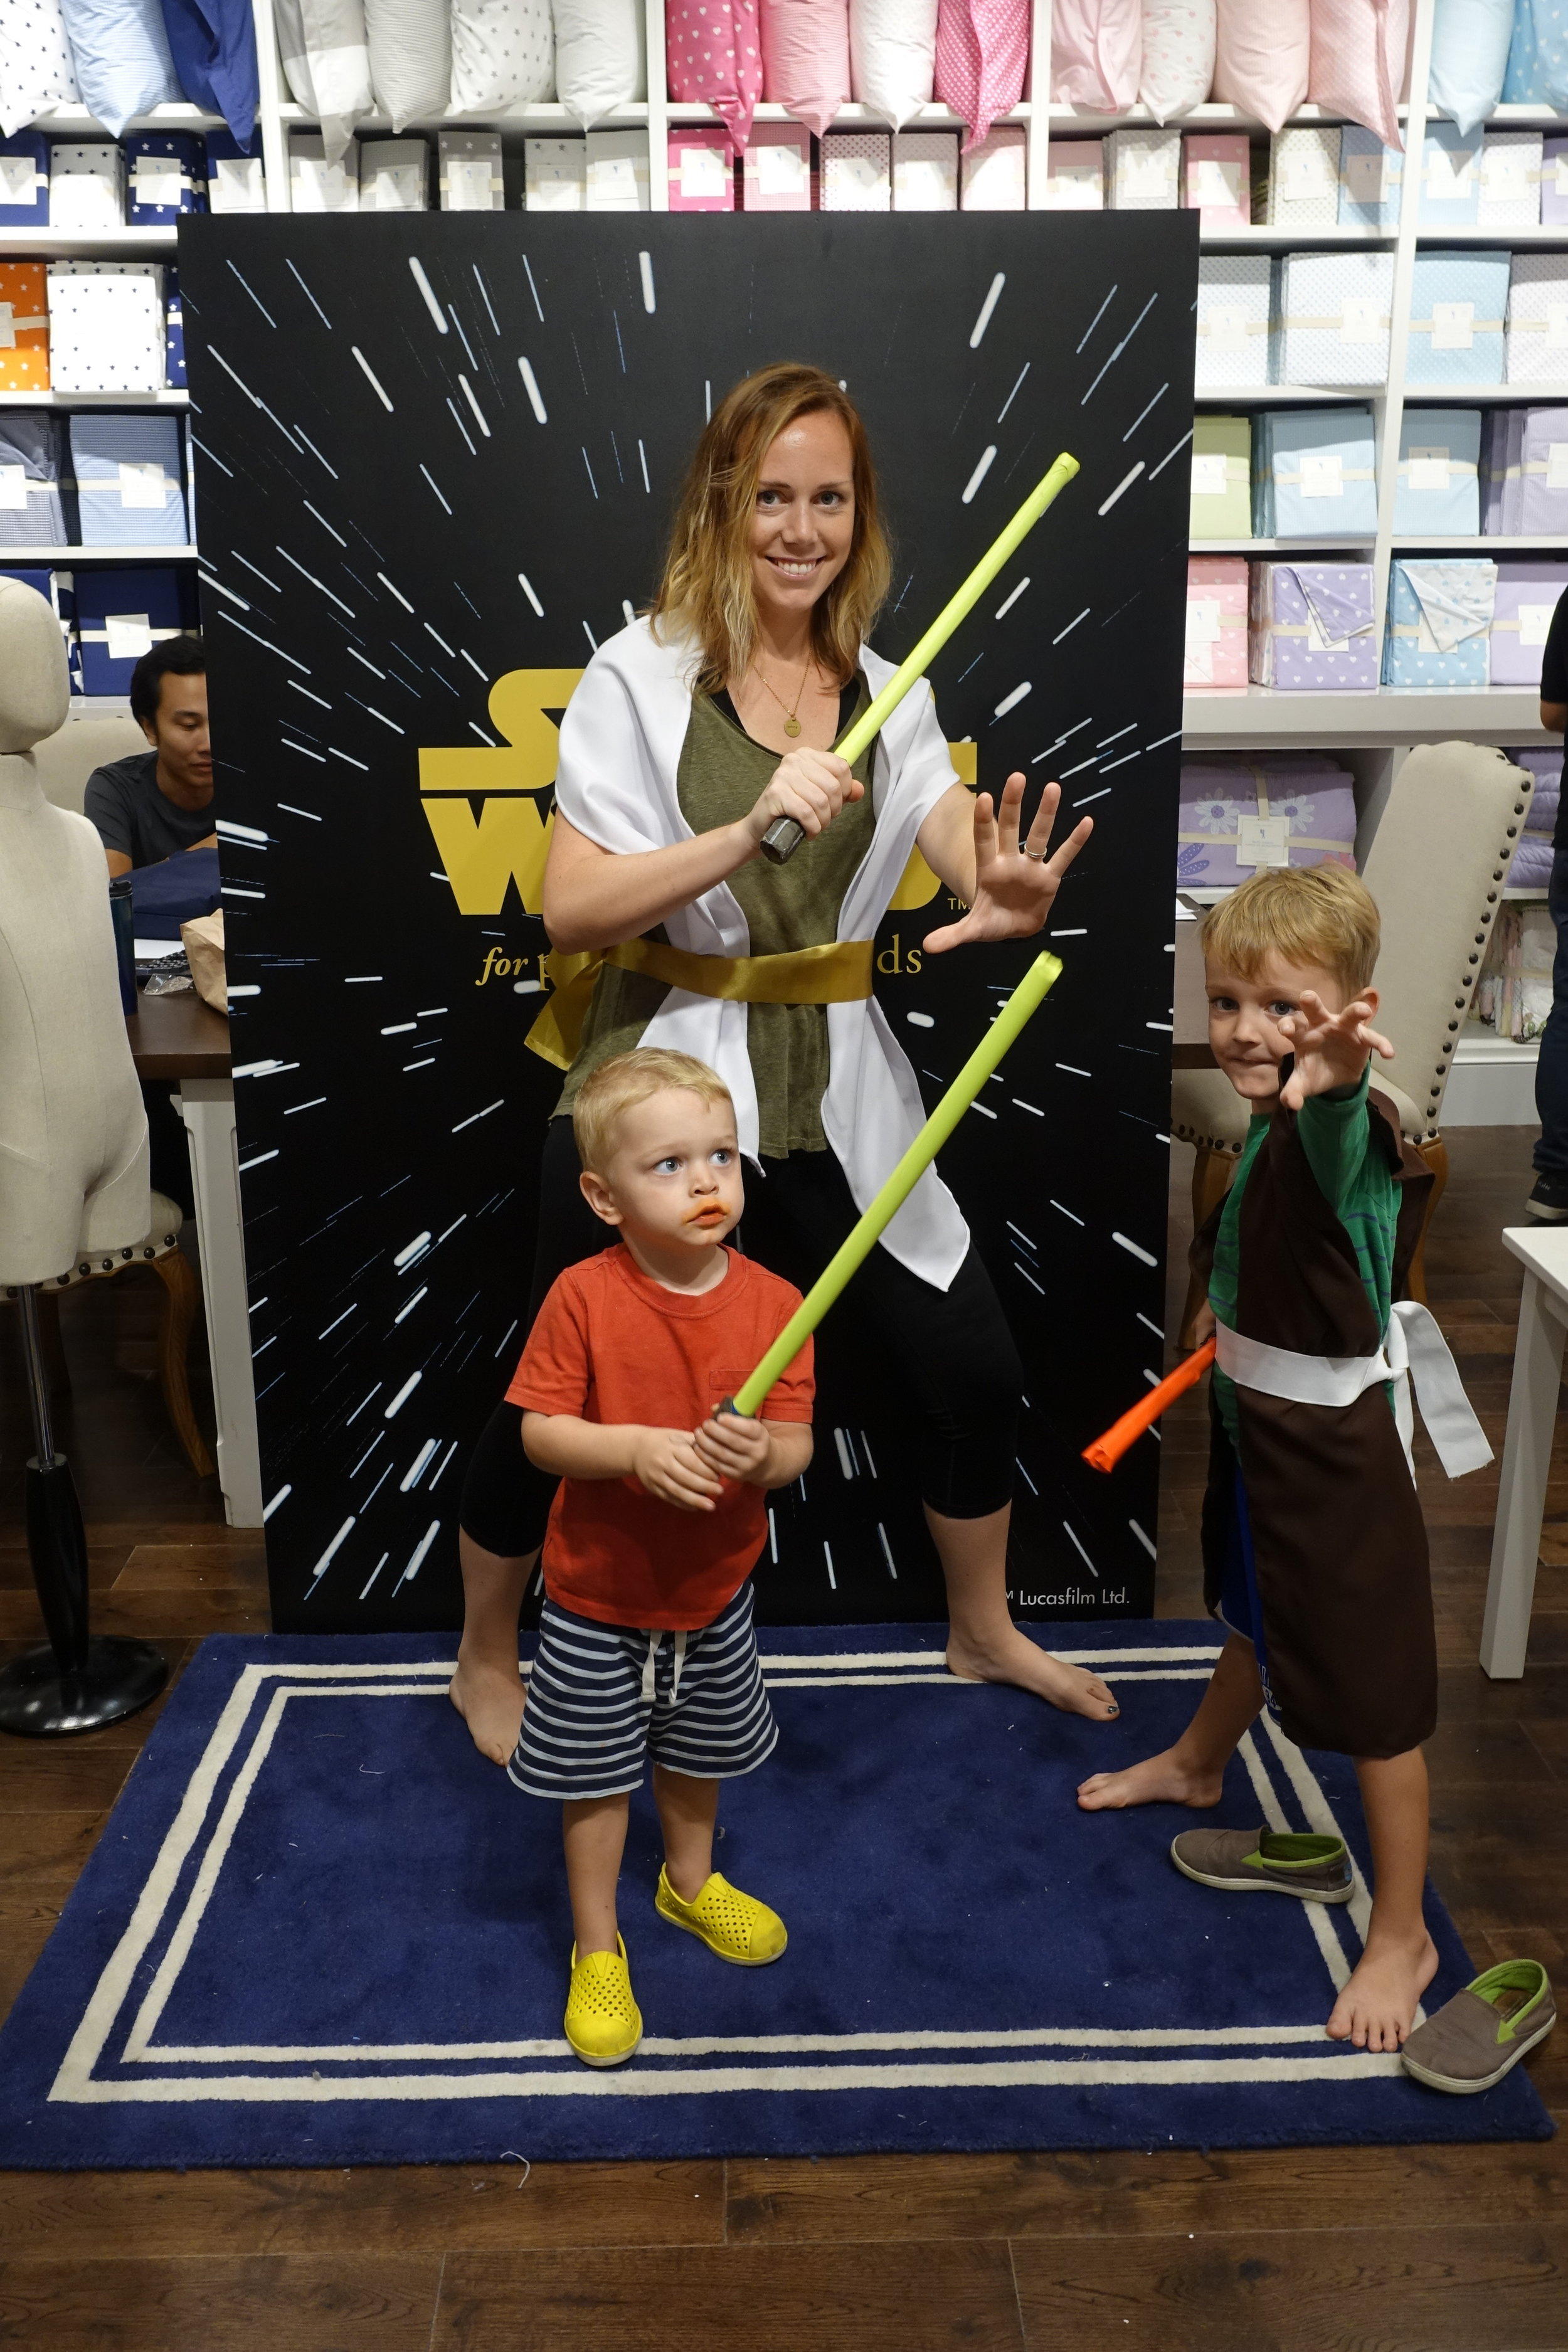 Everything happens in malls, like Starwars events.JPG